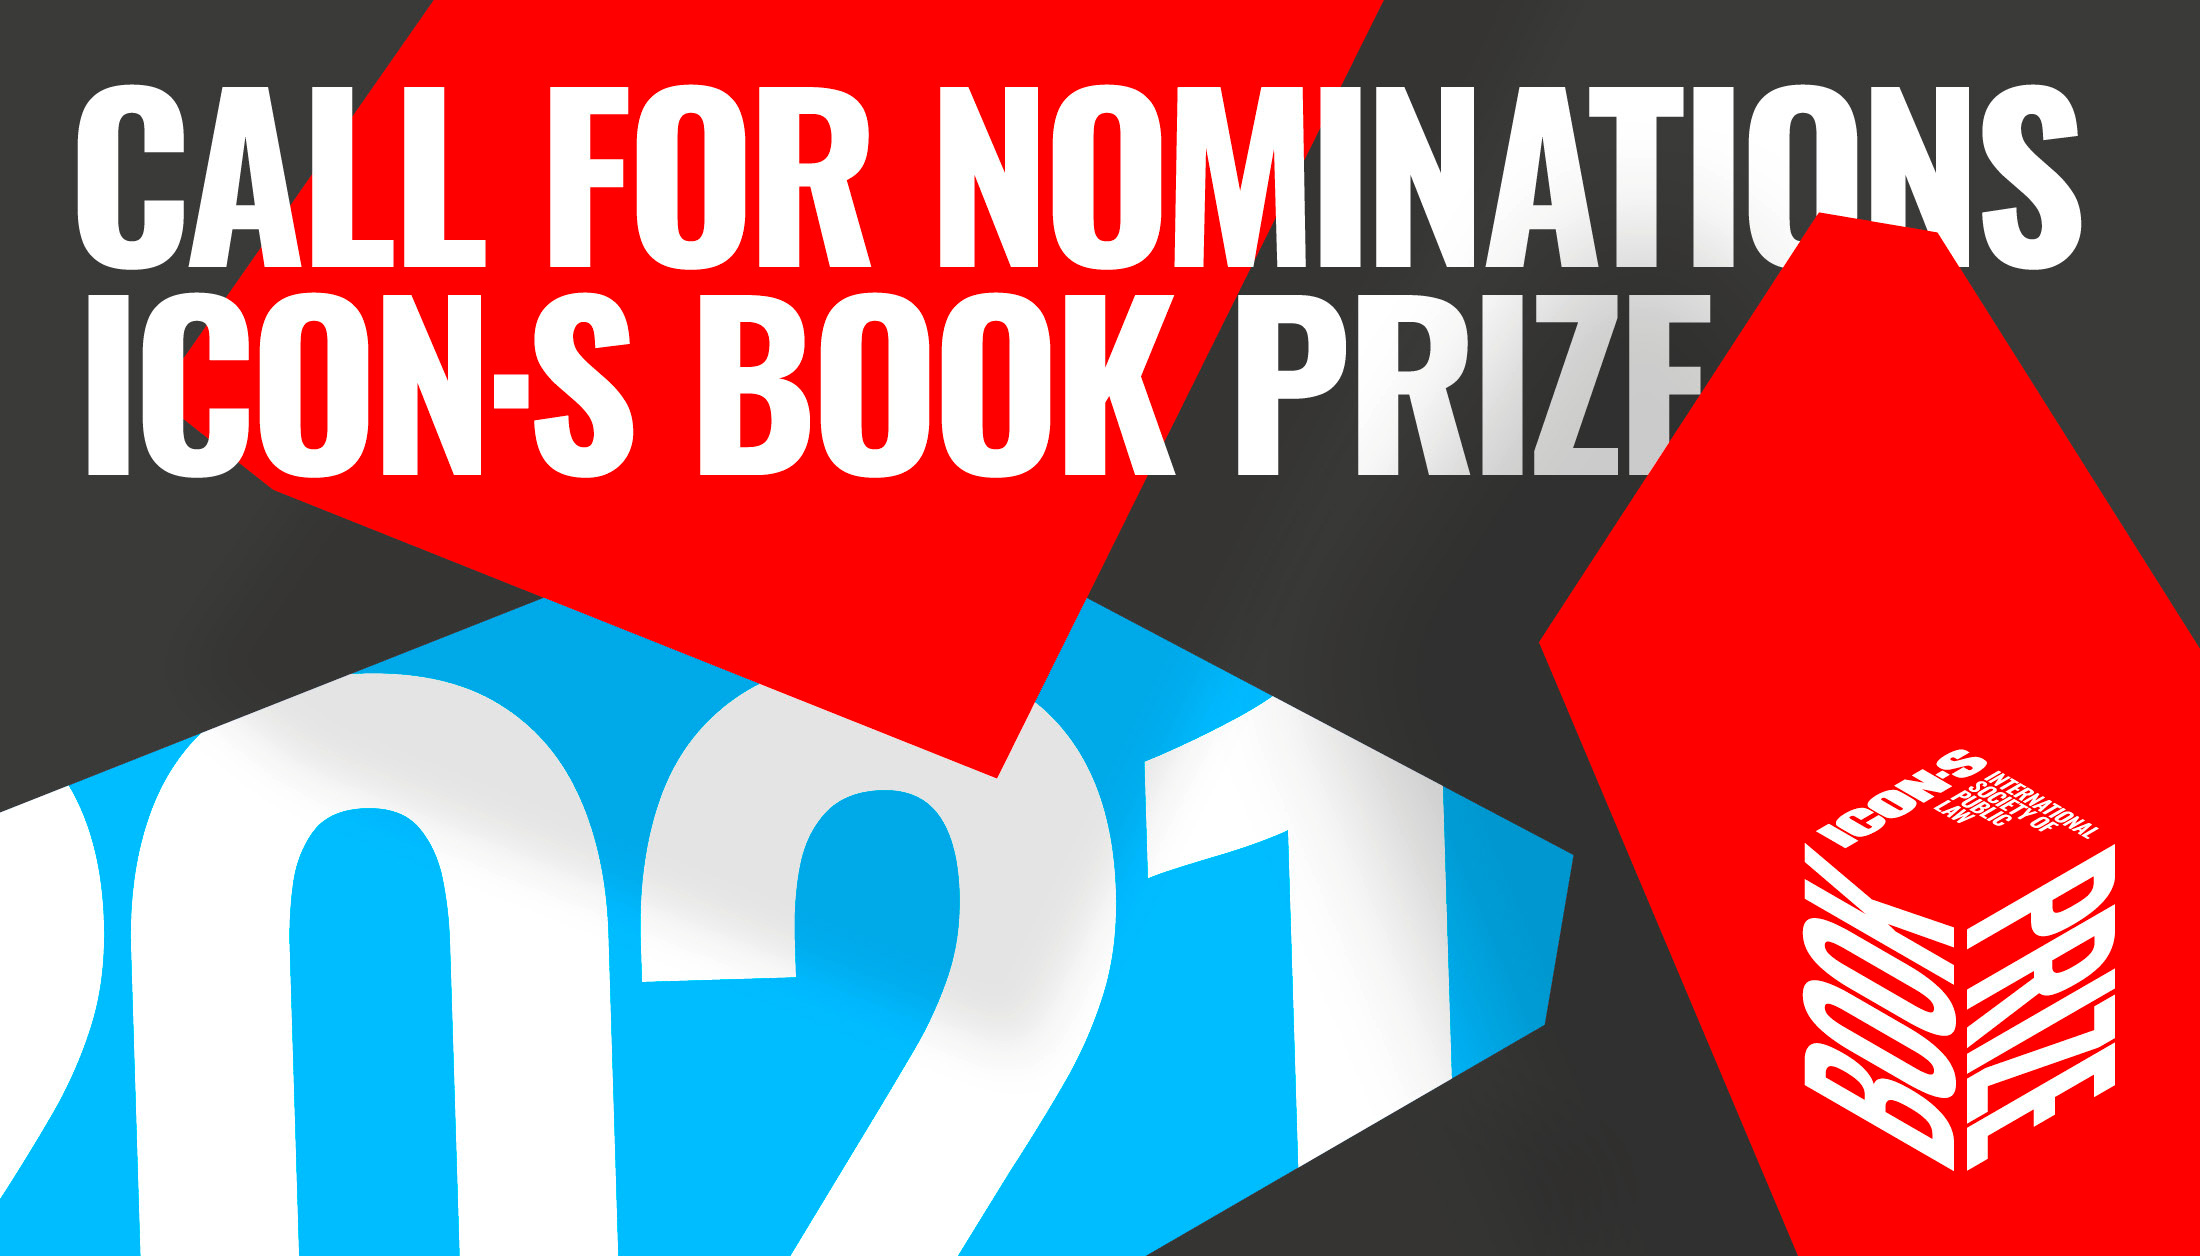 Book Prize Call for Nominations